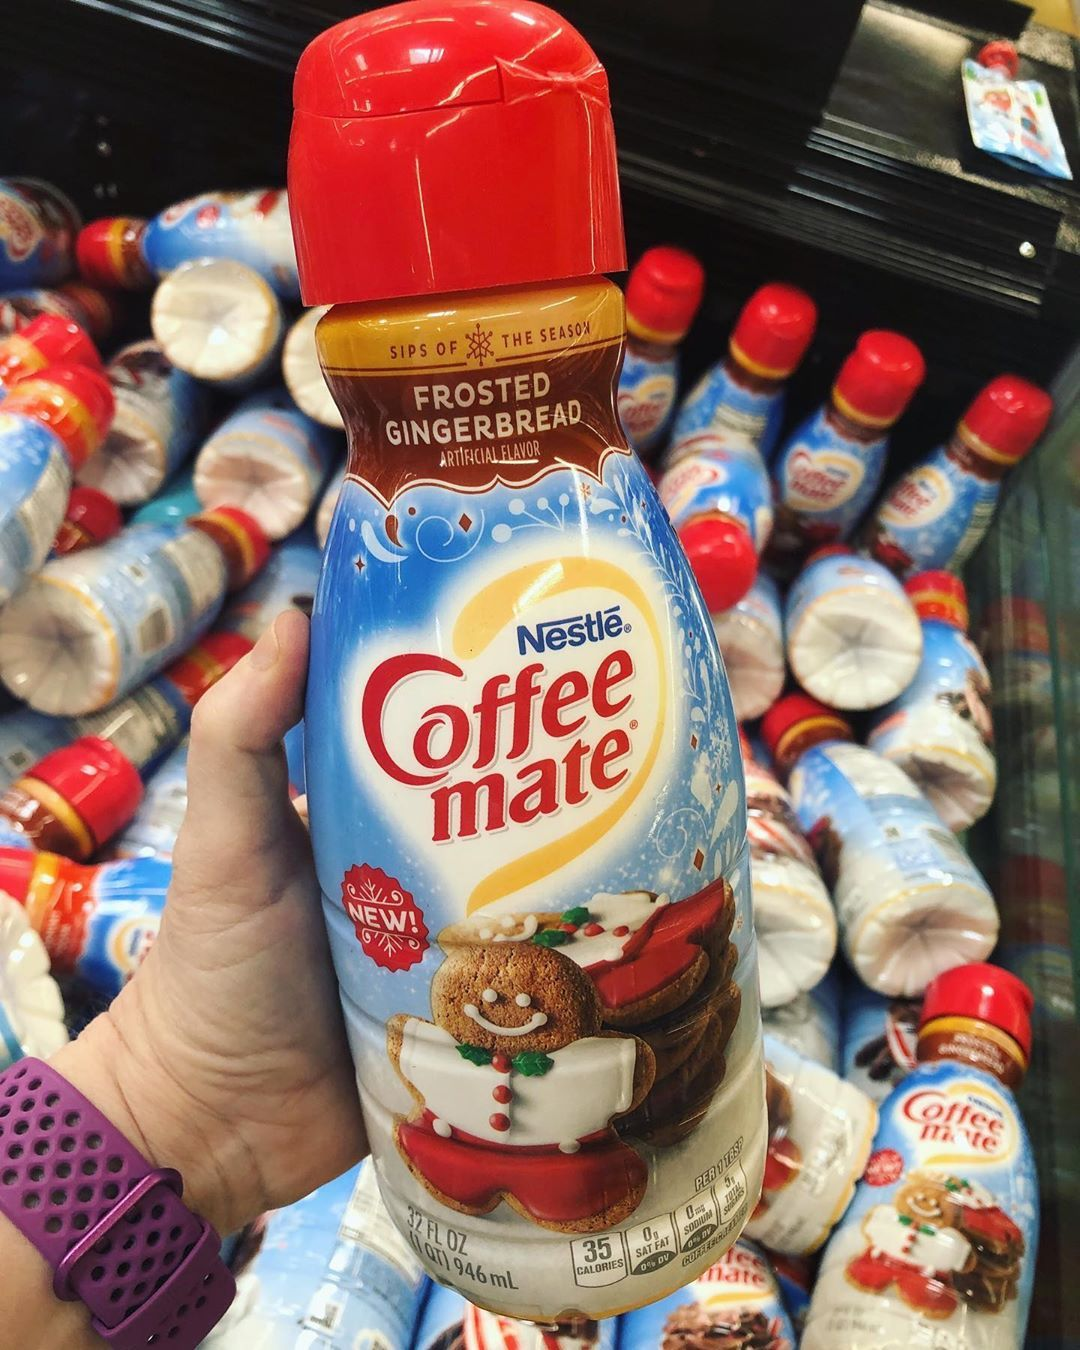 New Frosted Gingerbread CoffeeMate creamer is hitting